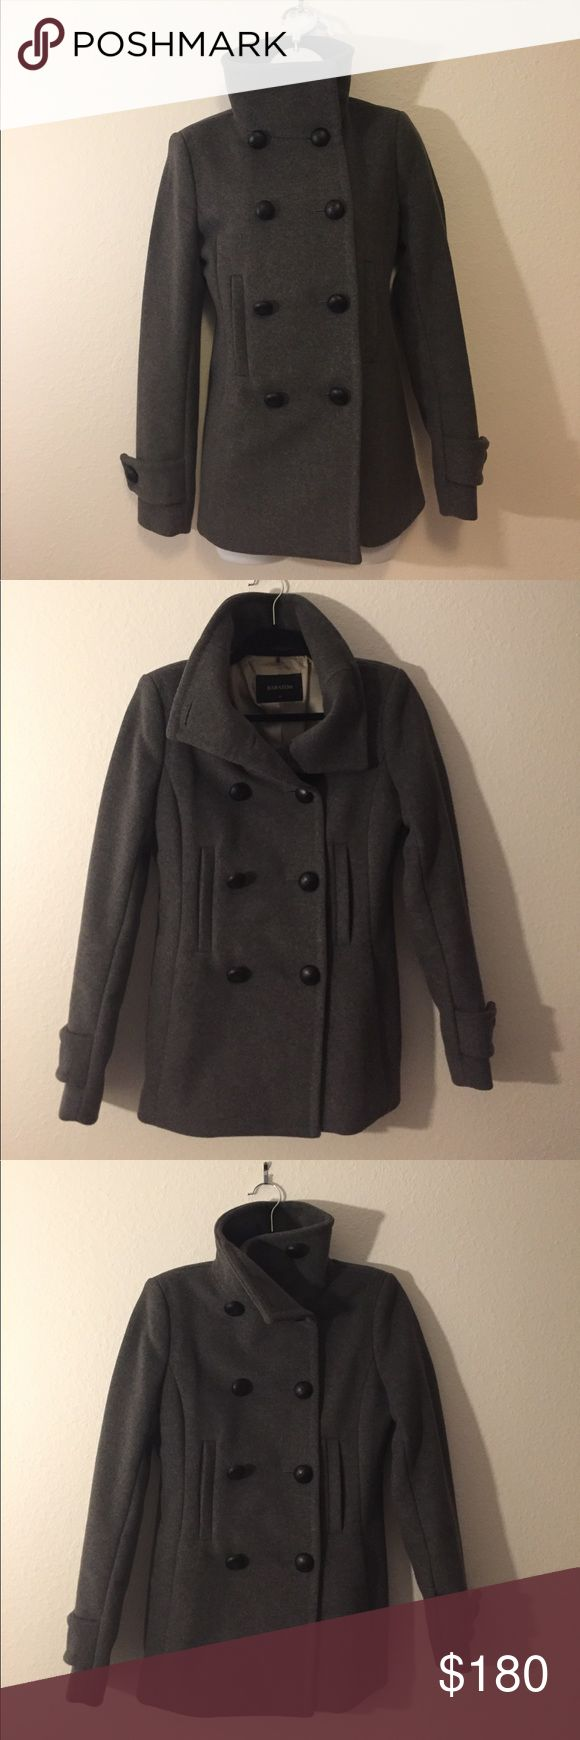 Aritzia Babaton Howell Grey Wool Coat size xs Wore only once. Beautiful Tailored coat using a luxurious Italian wool blend. The seams and edges are finished with a bespoke stitching technique to keep them flat and defined. Leather covered buttons. The coat has a slim, sleek silhouette. Several ways to wear it. Aritzia Jackets & Coats